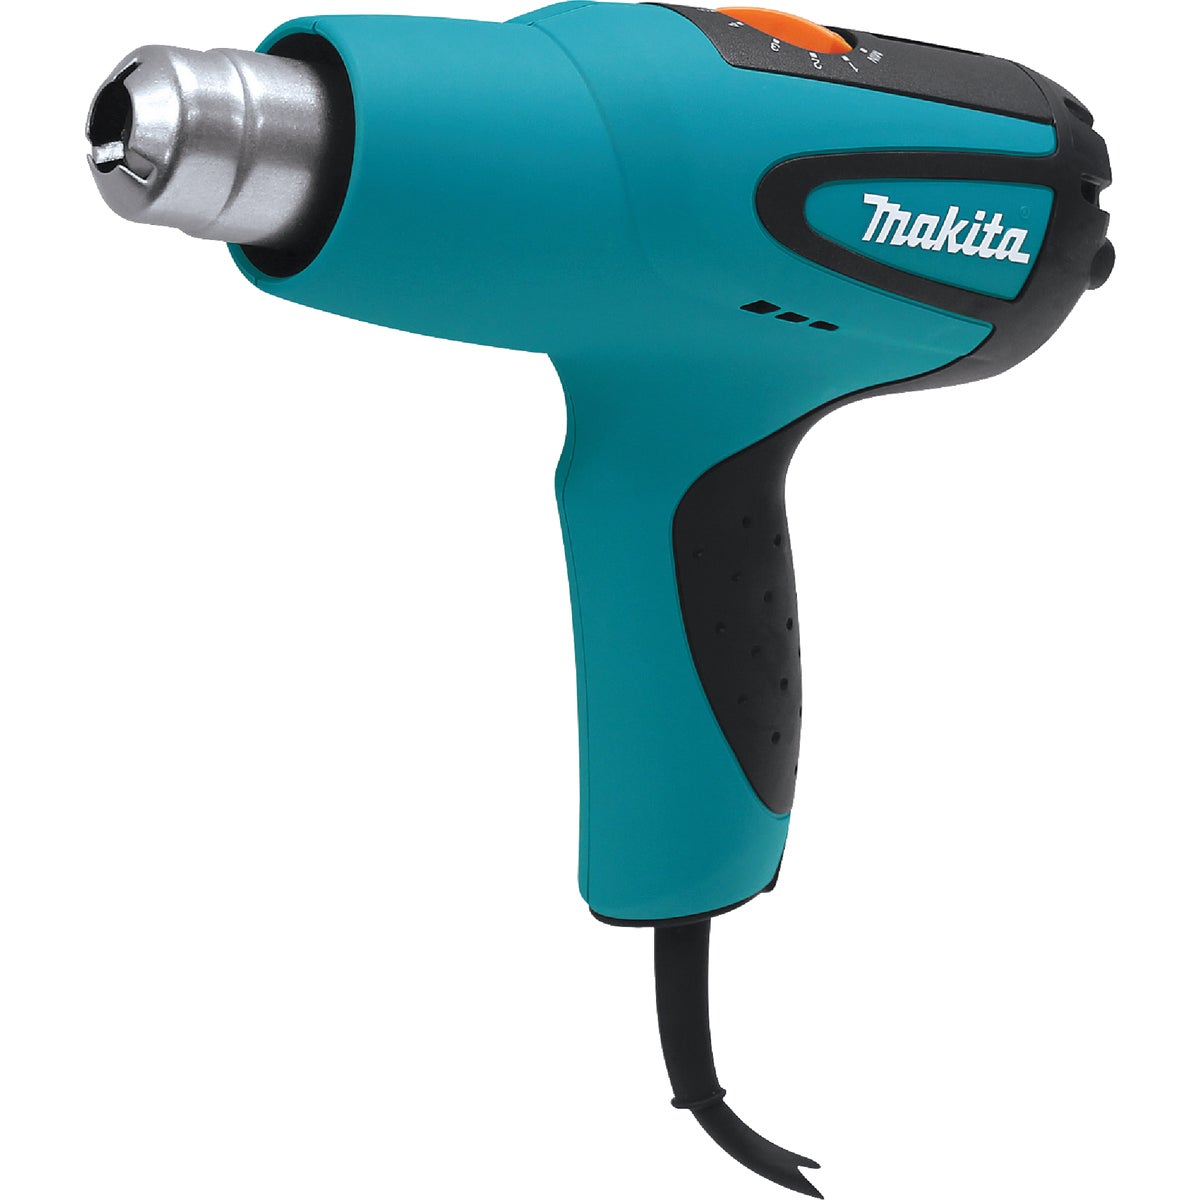 1400W 12A HEAT GUN - HG551V by Makita Usa Inc